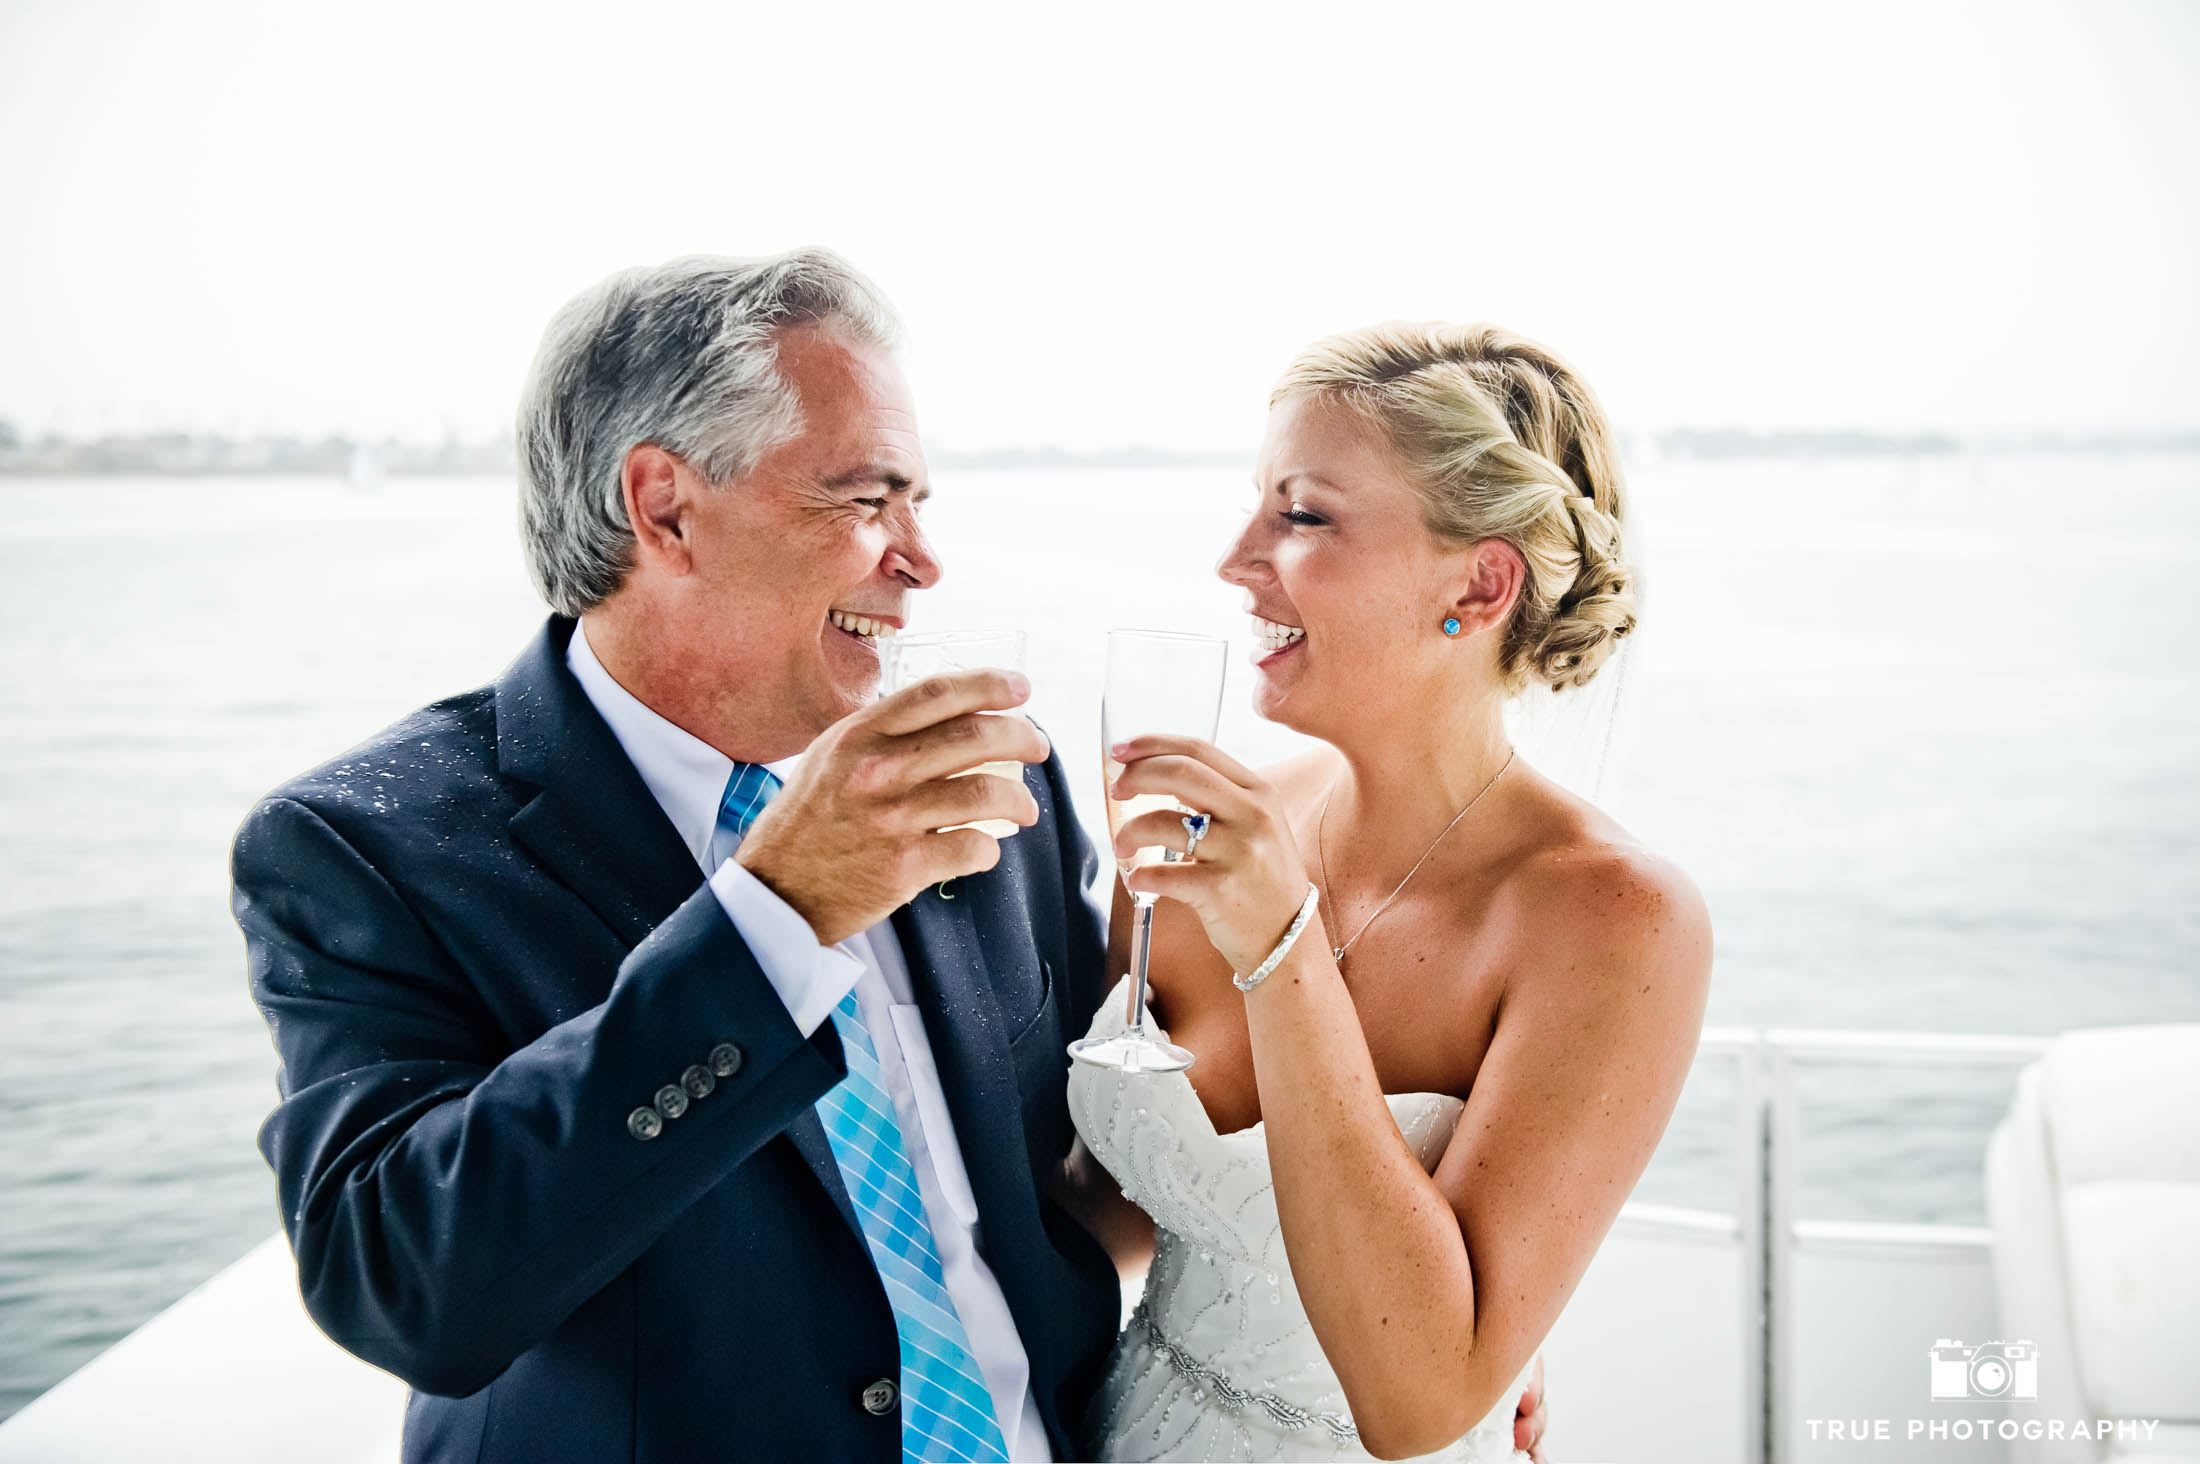 Bride laughs with Father as they share toast after wedding ceremony